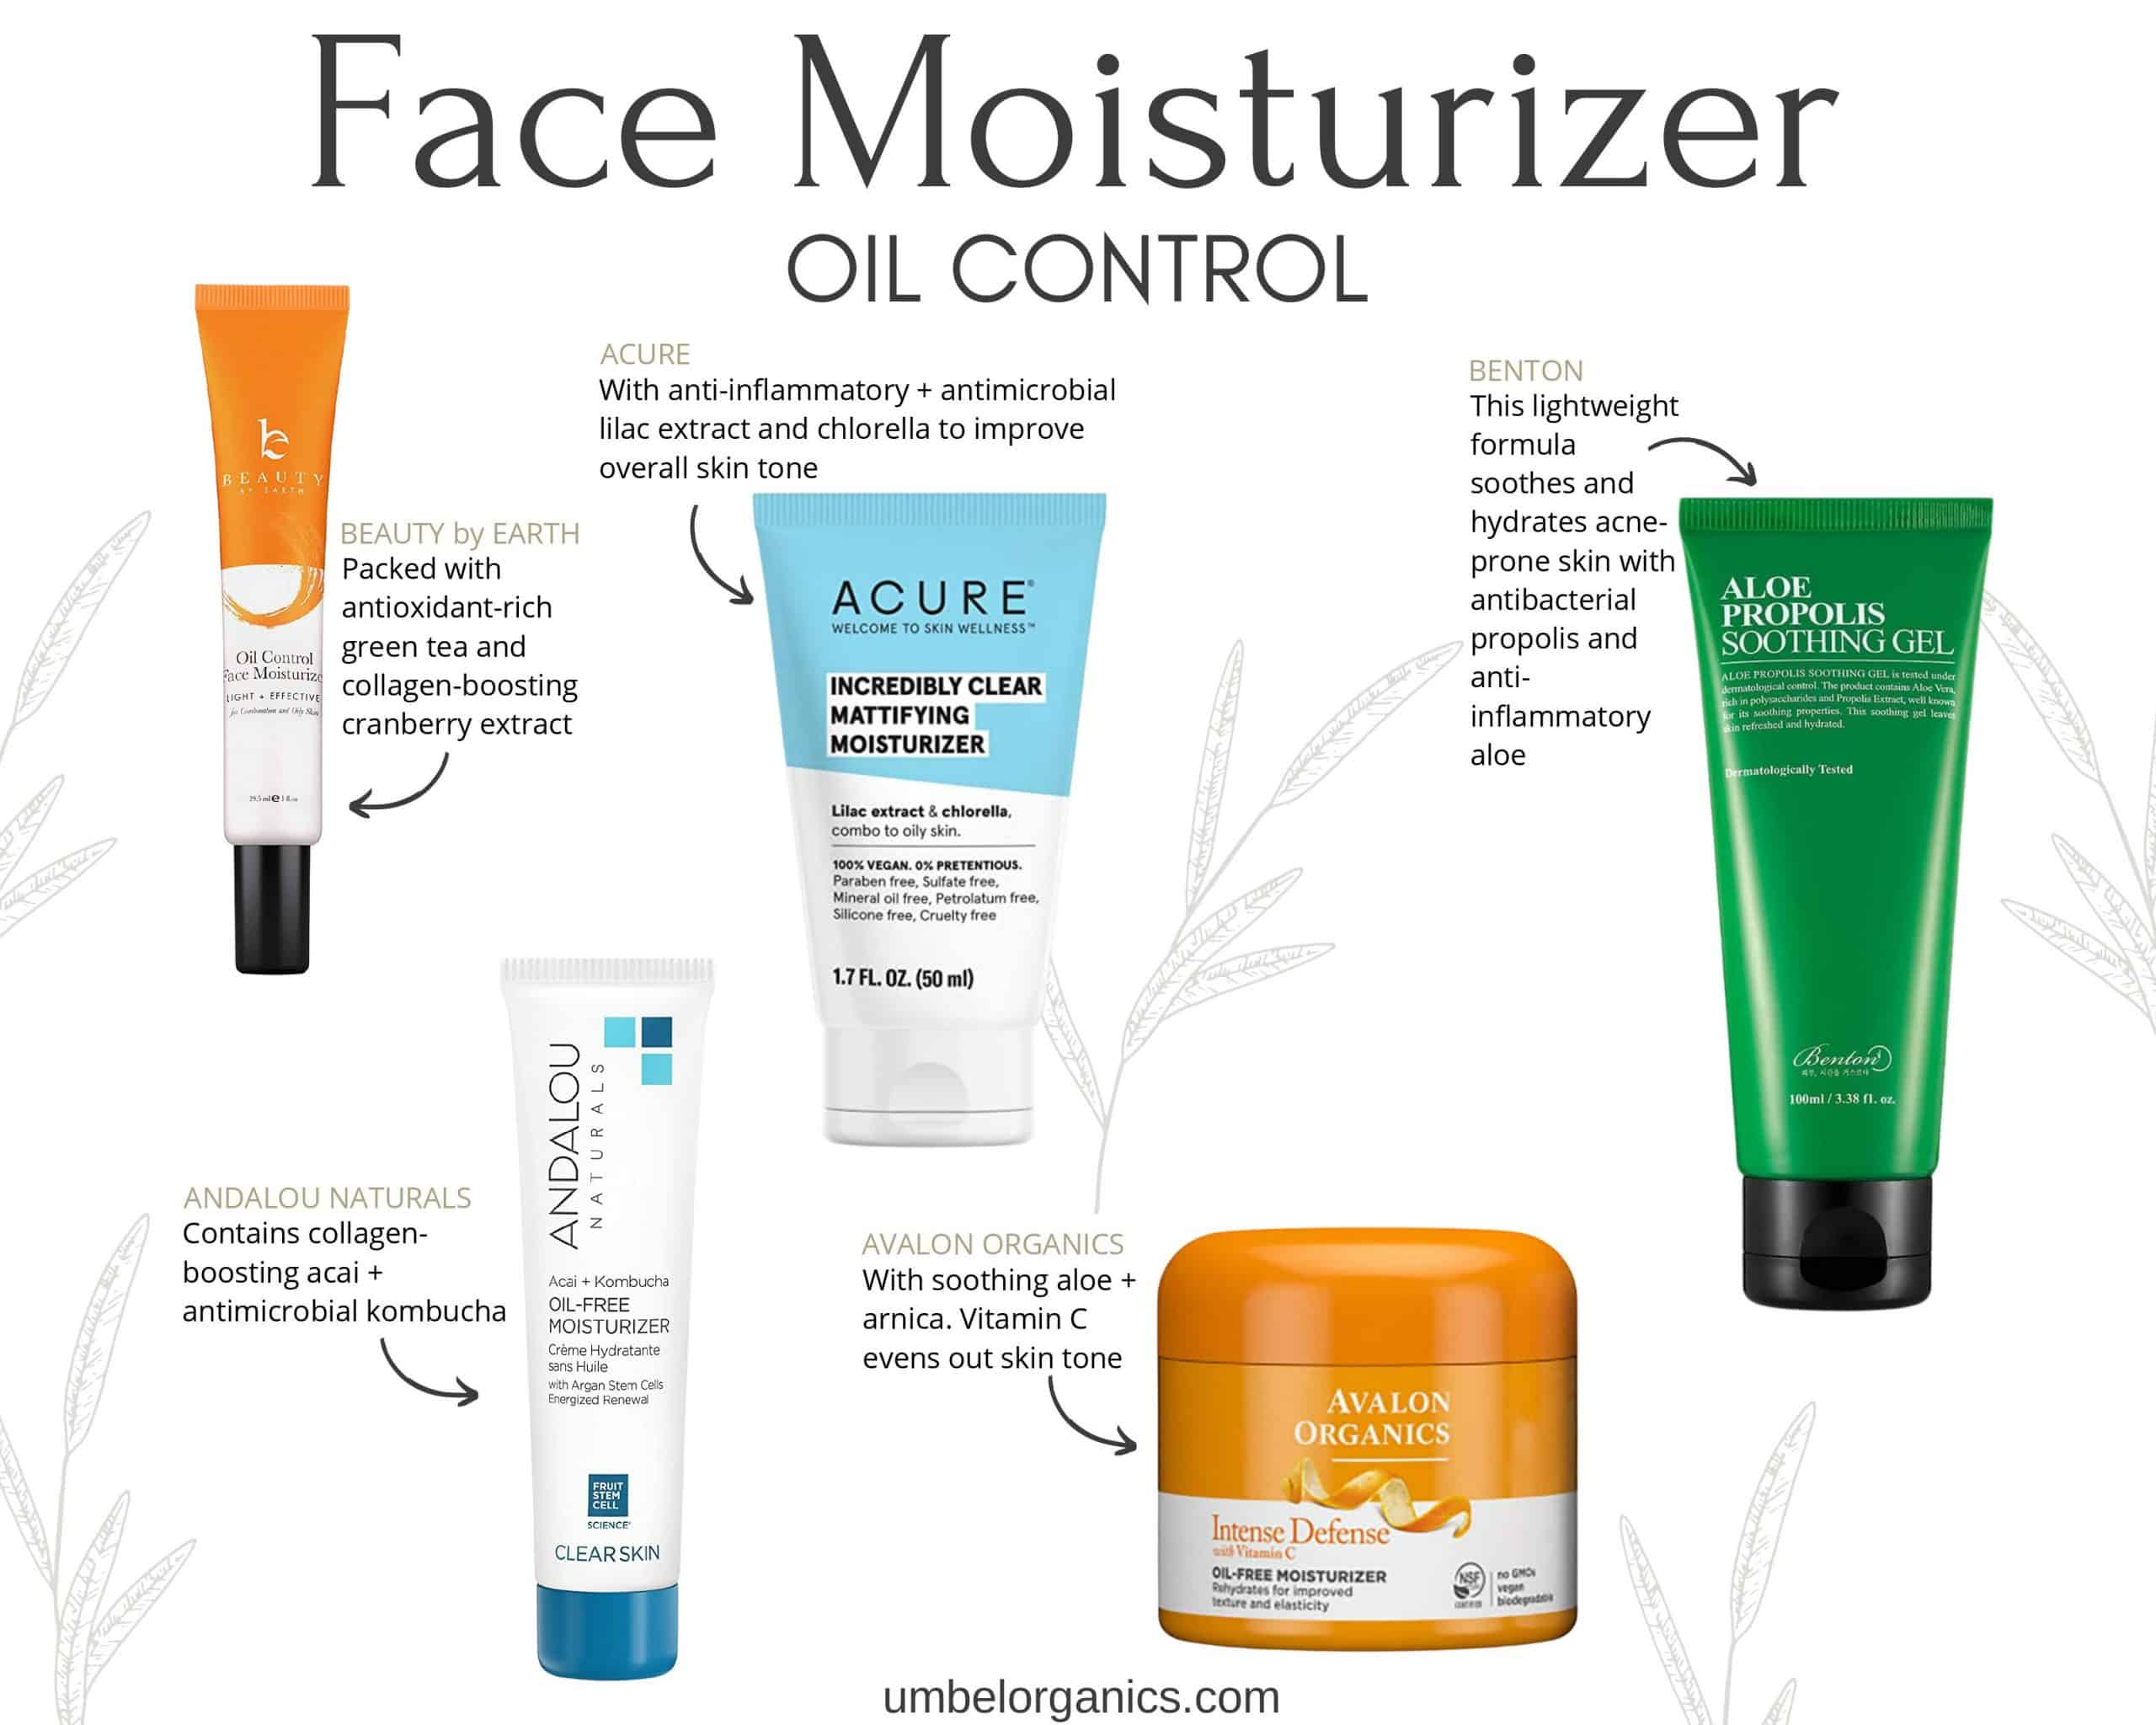 5 Brands of clean budget-friendly oil control face moisturizer